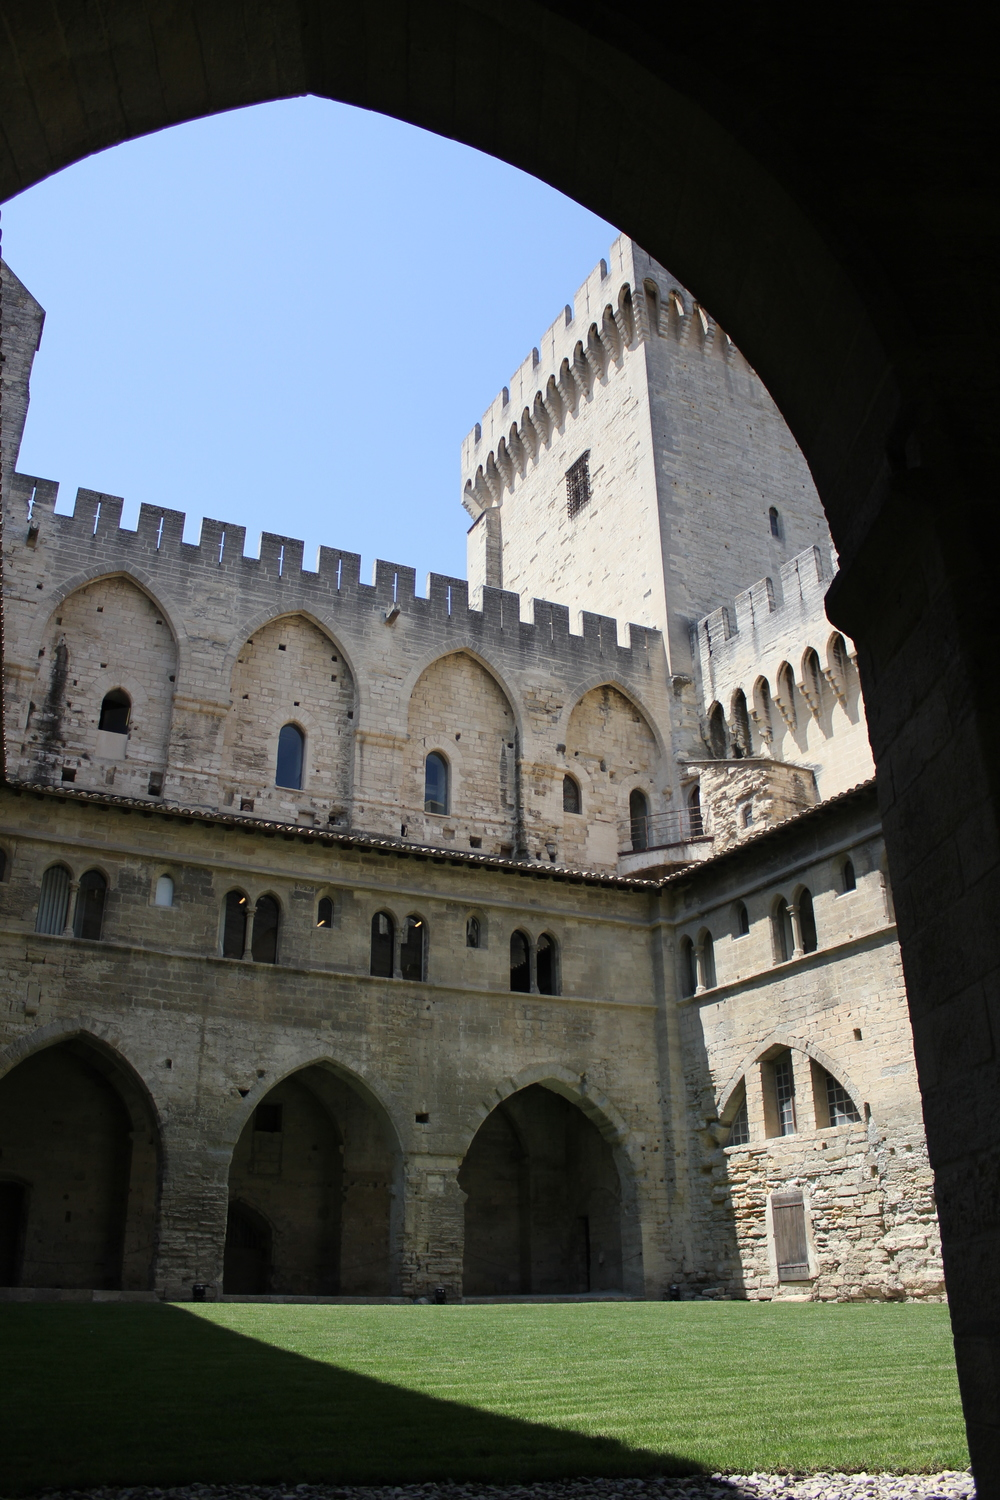 A courtyard at the Palais du Papes